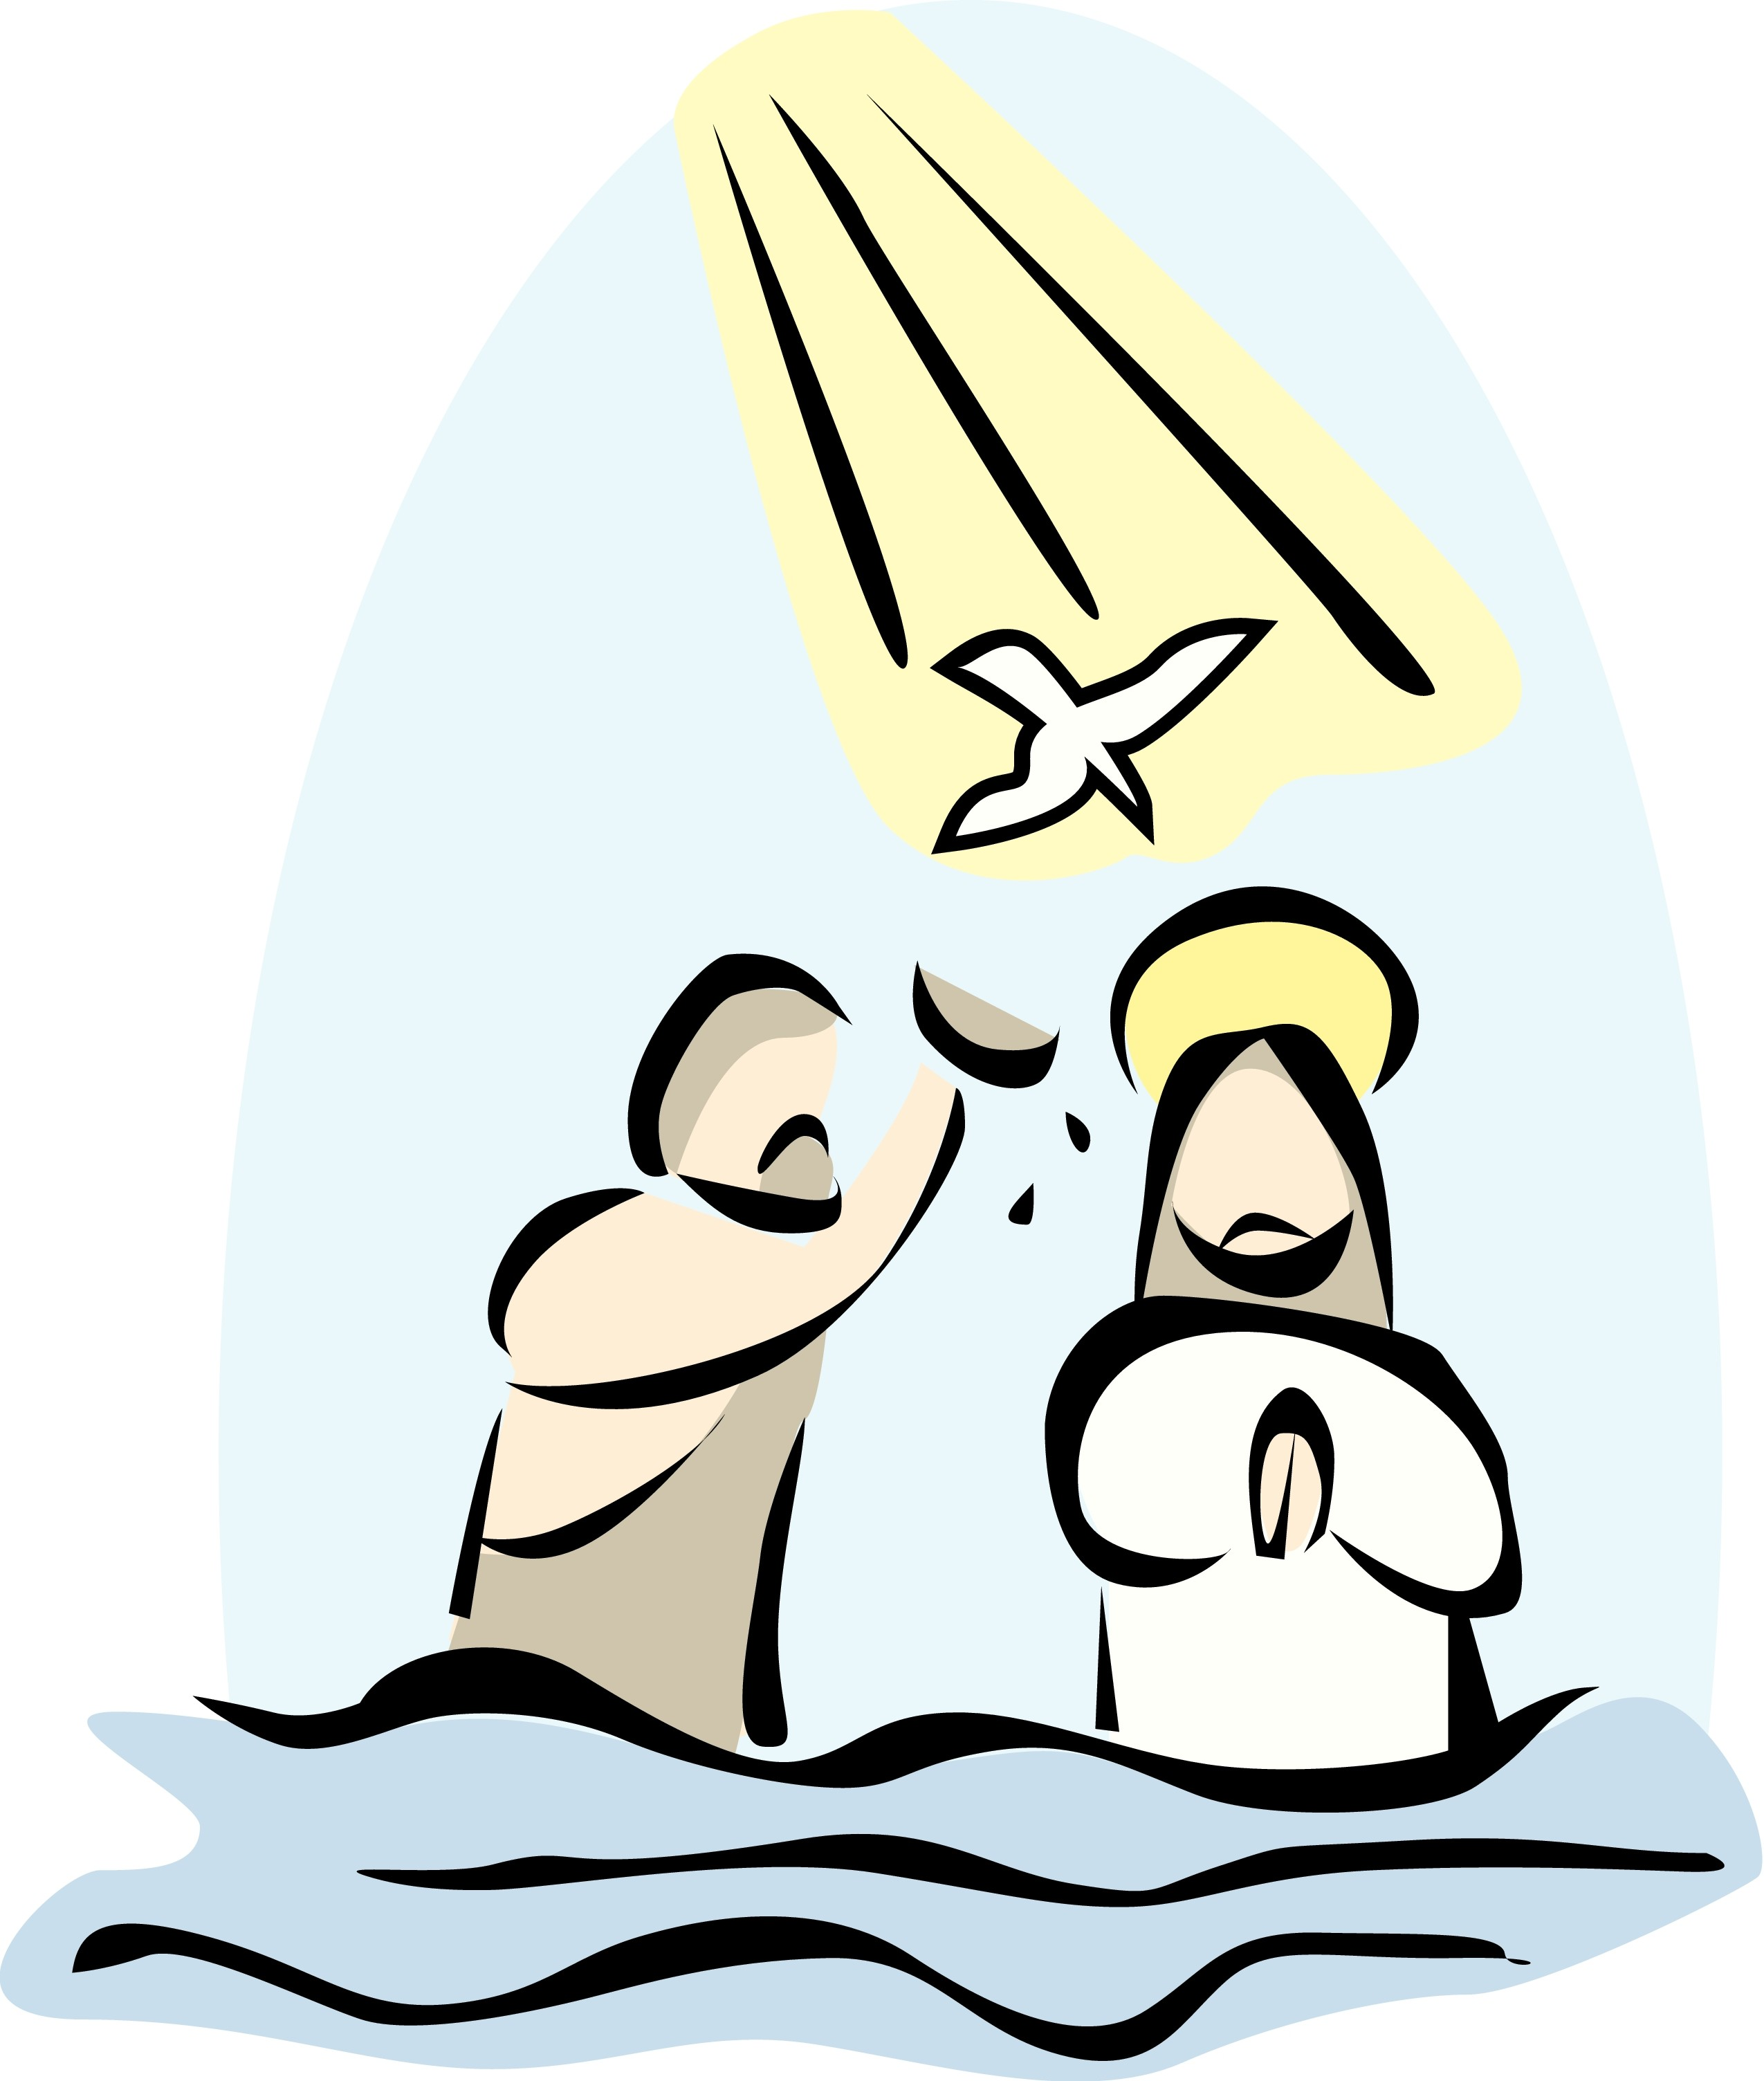 baptism clipart at getdrawings com free for personal use baptism rh getdrawings com baptism clip art free baptism clip art catholic